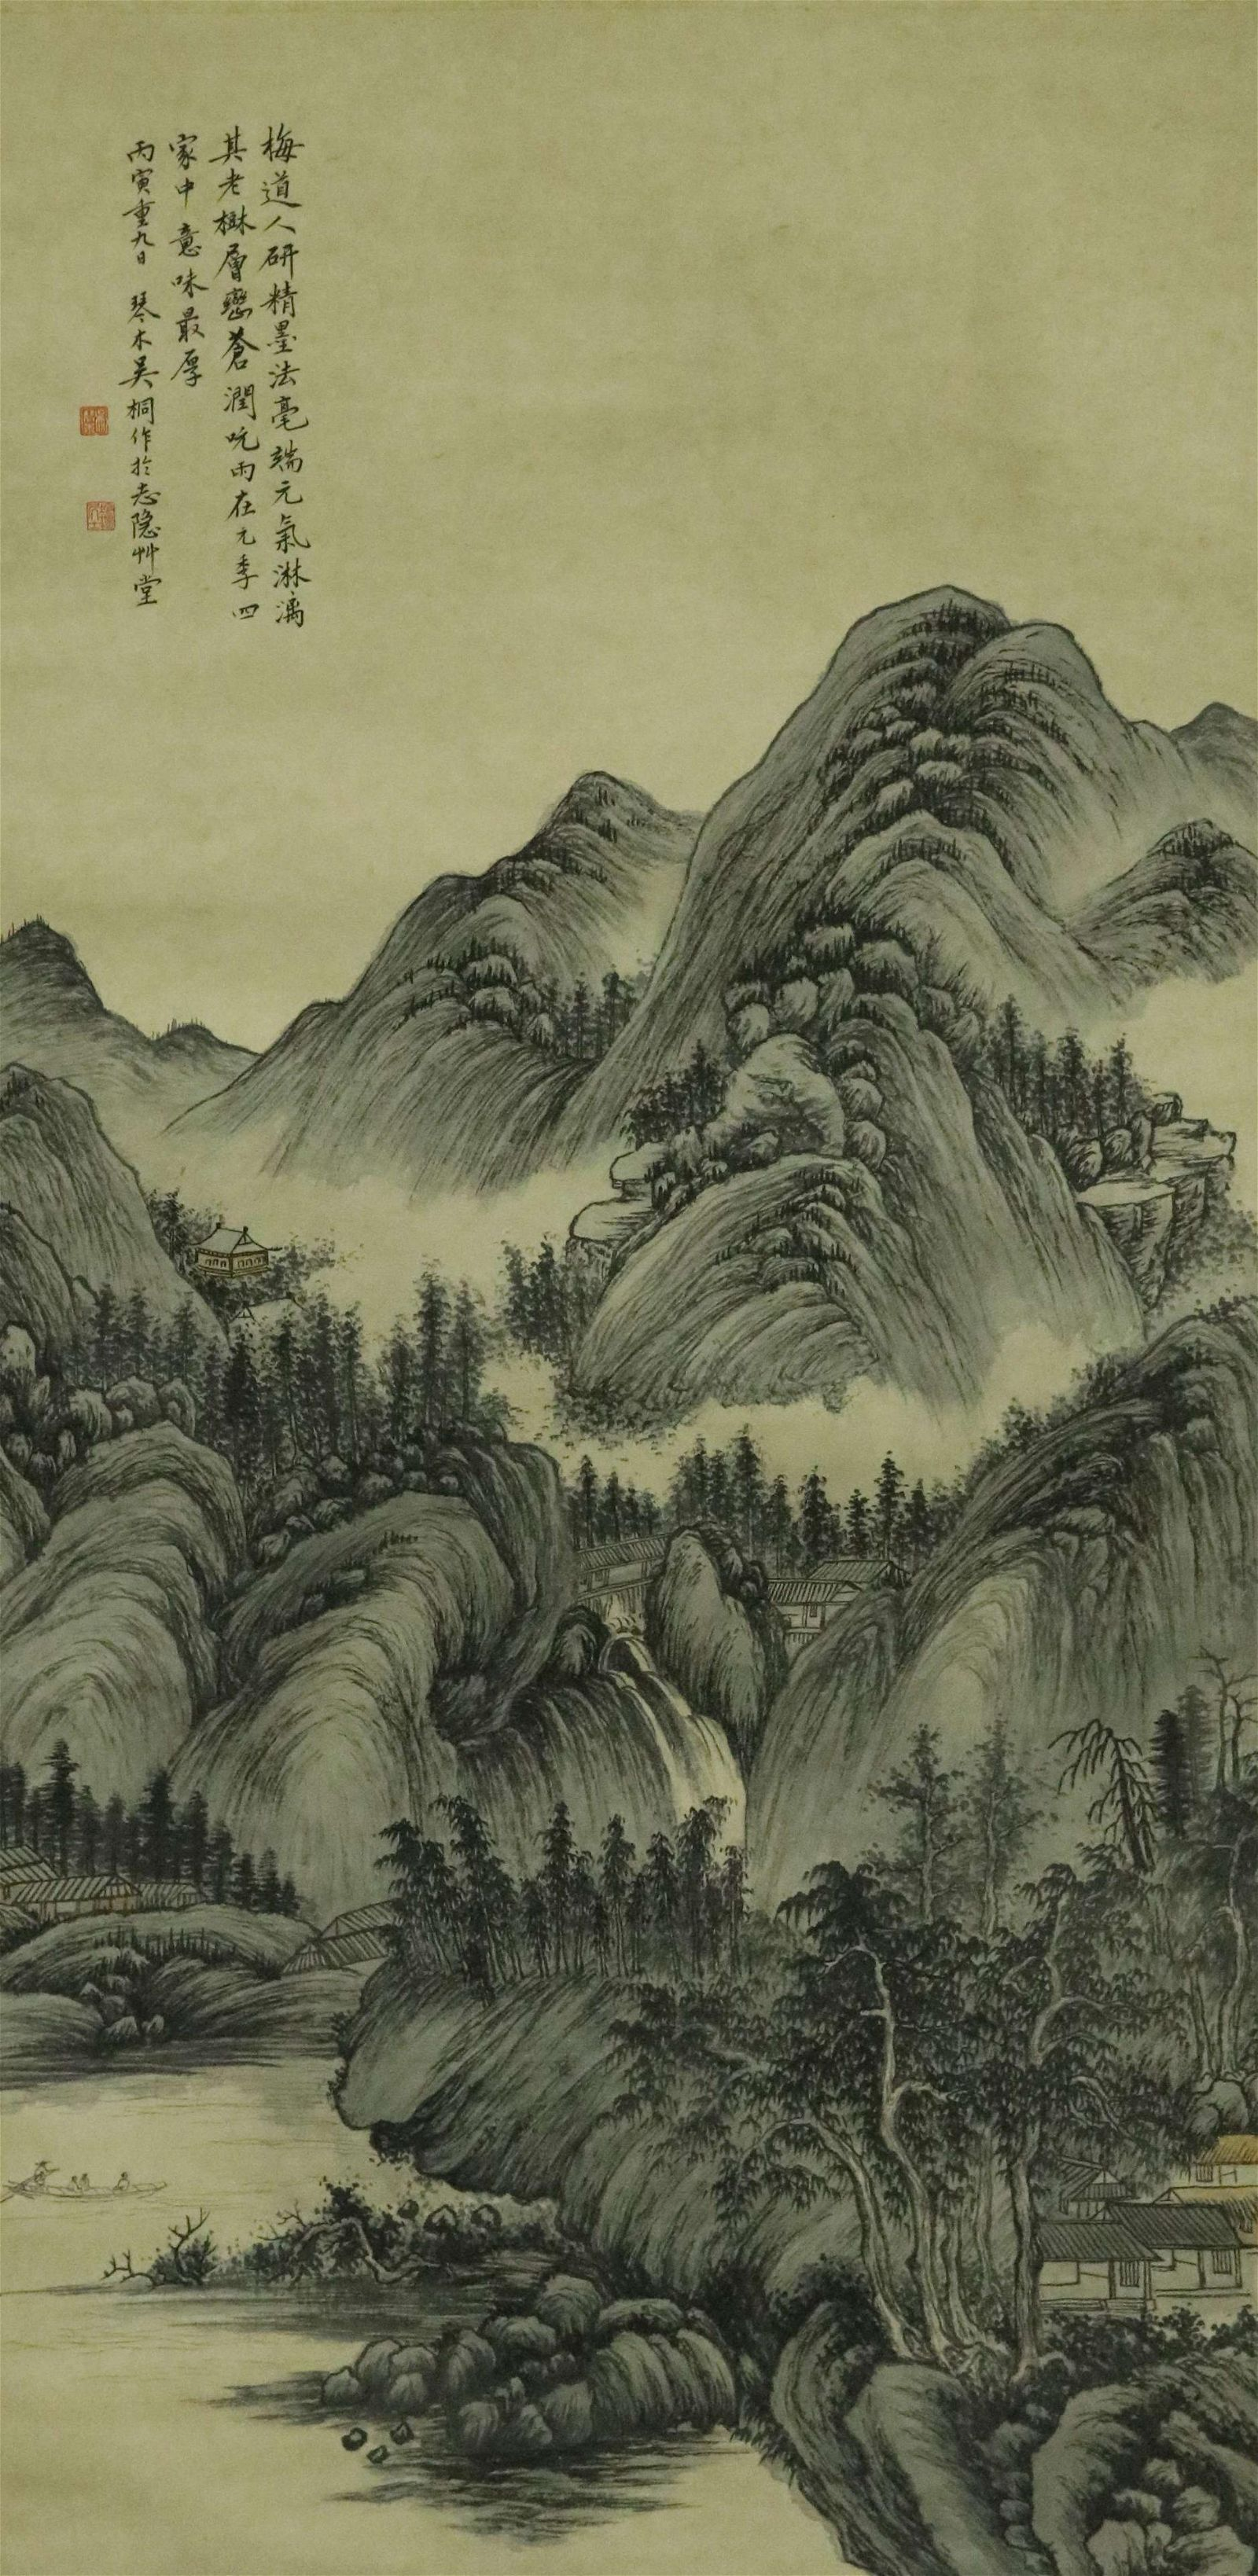 WU TONG: INK ON PAPER PAINTING 'LANDSCAPE'